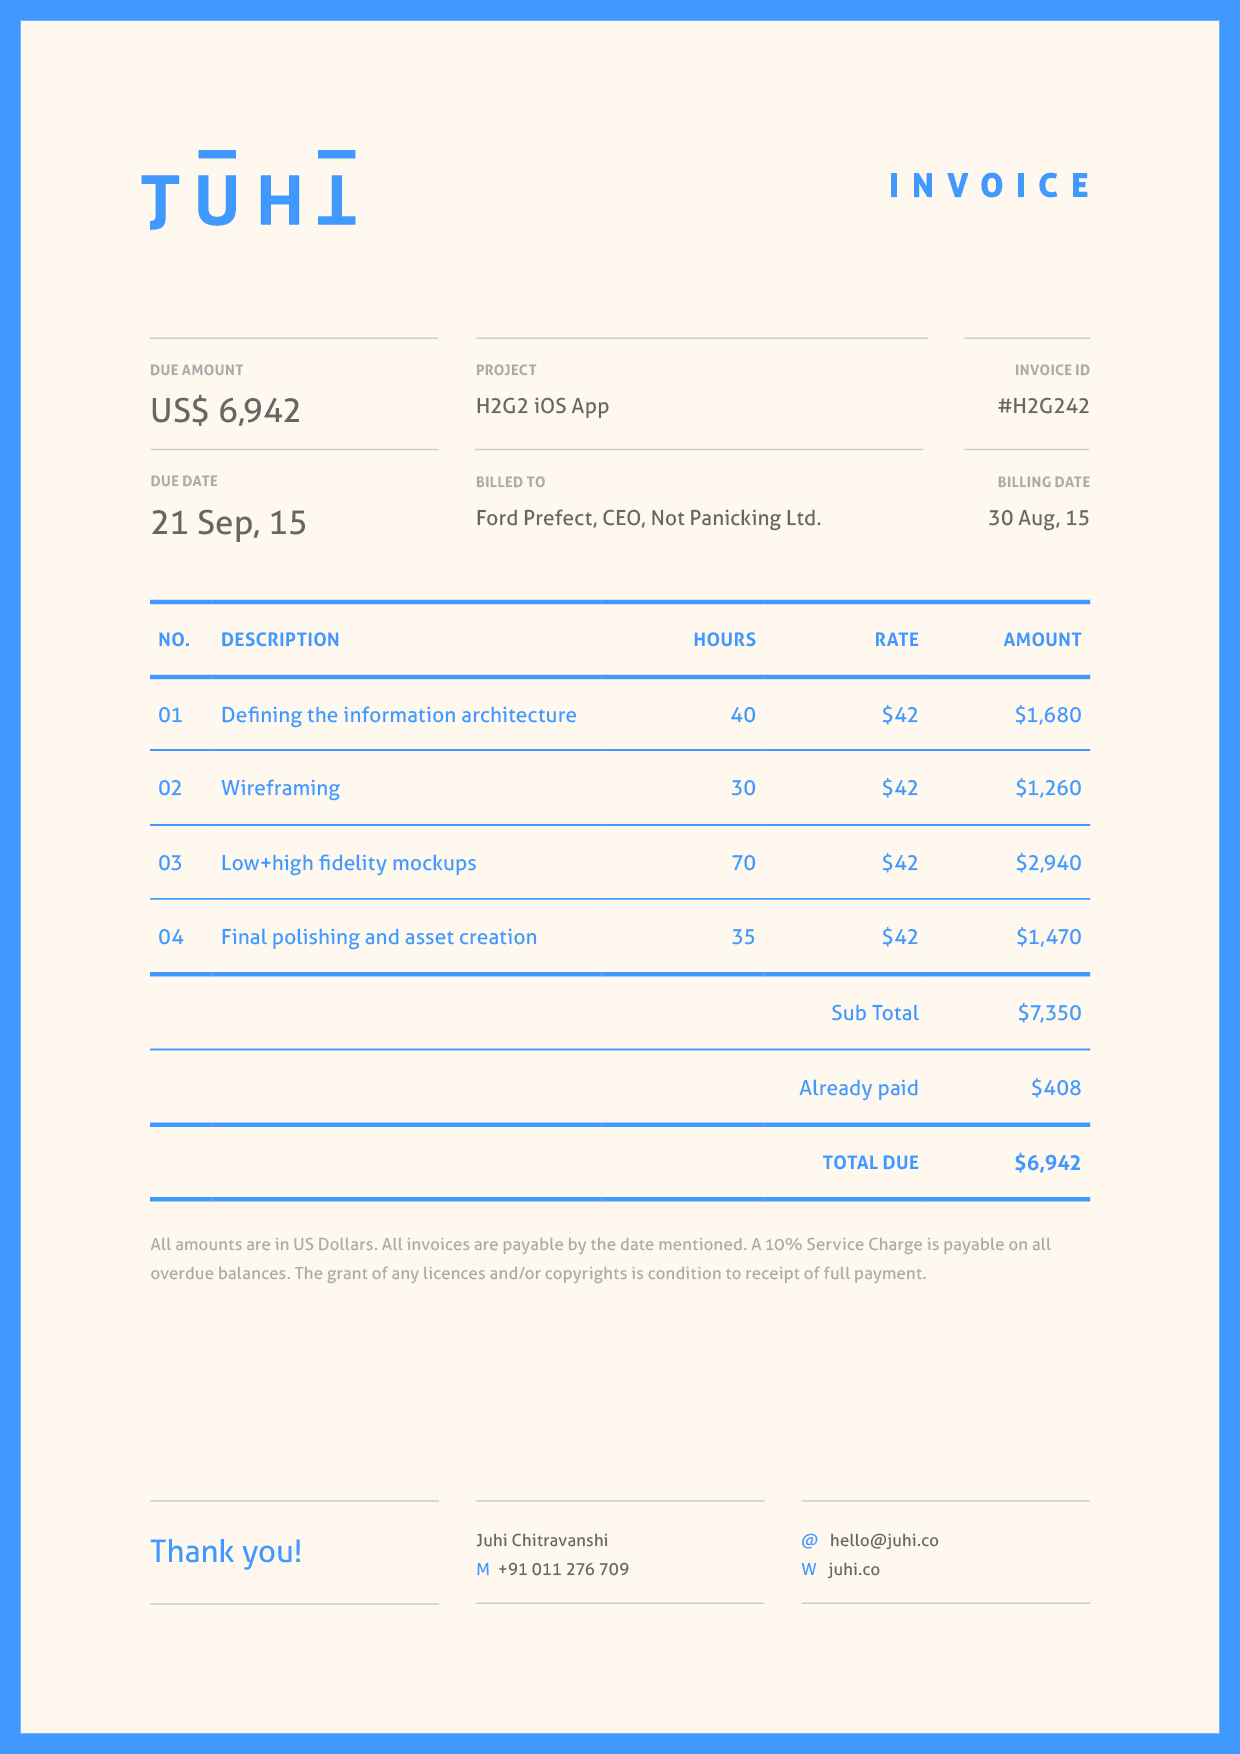 Usdgus  Pretty Dont Hold Back On Your Invoice  Inspiring Designs  With Foxy Invoice By Juhi Chitravanshi Follow With Delectable Html Invoice Also Invoice Log In Addition Quick Invoice Pro And Creat An Invoice As Well As Free Invoicing Templates Additionally Proforma Invoice Meaning From Inspirationfeedcom With Usdgus  Foxy Dont Hold Back On Your Invoice  Inspiring Designs  With Delectable Invoice By Juhi Chitravanshi Follow And Pretty Html Invoice Also Invoice Log In Addition Quick Invoice Pro From Inspirationfeedcom